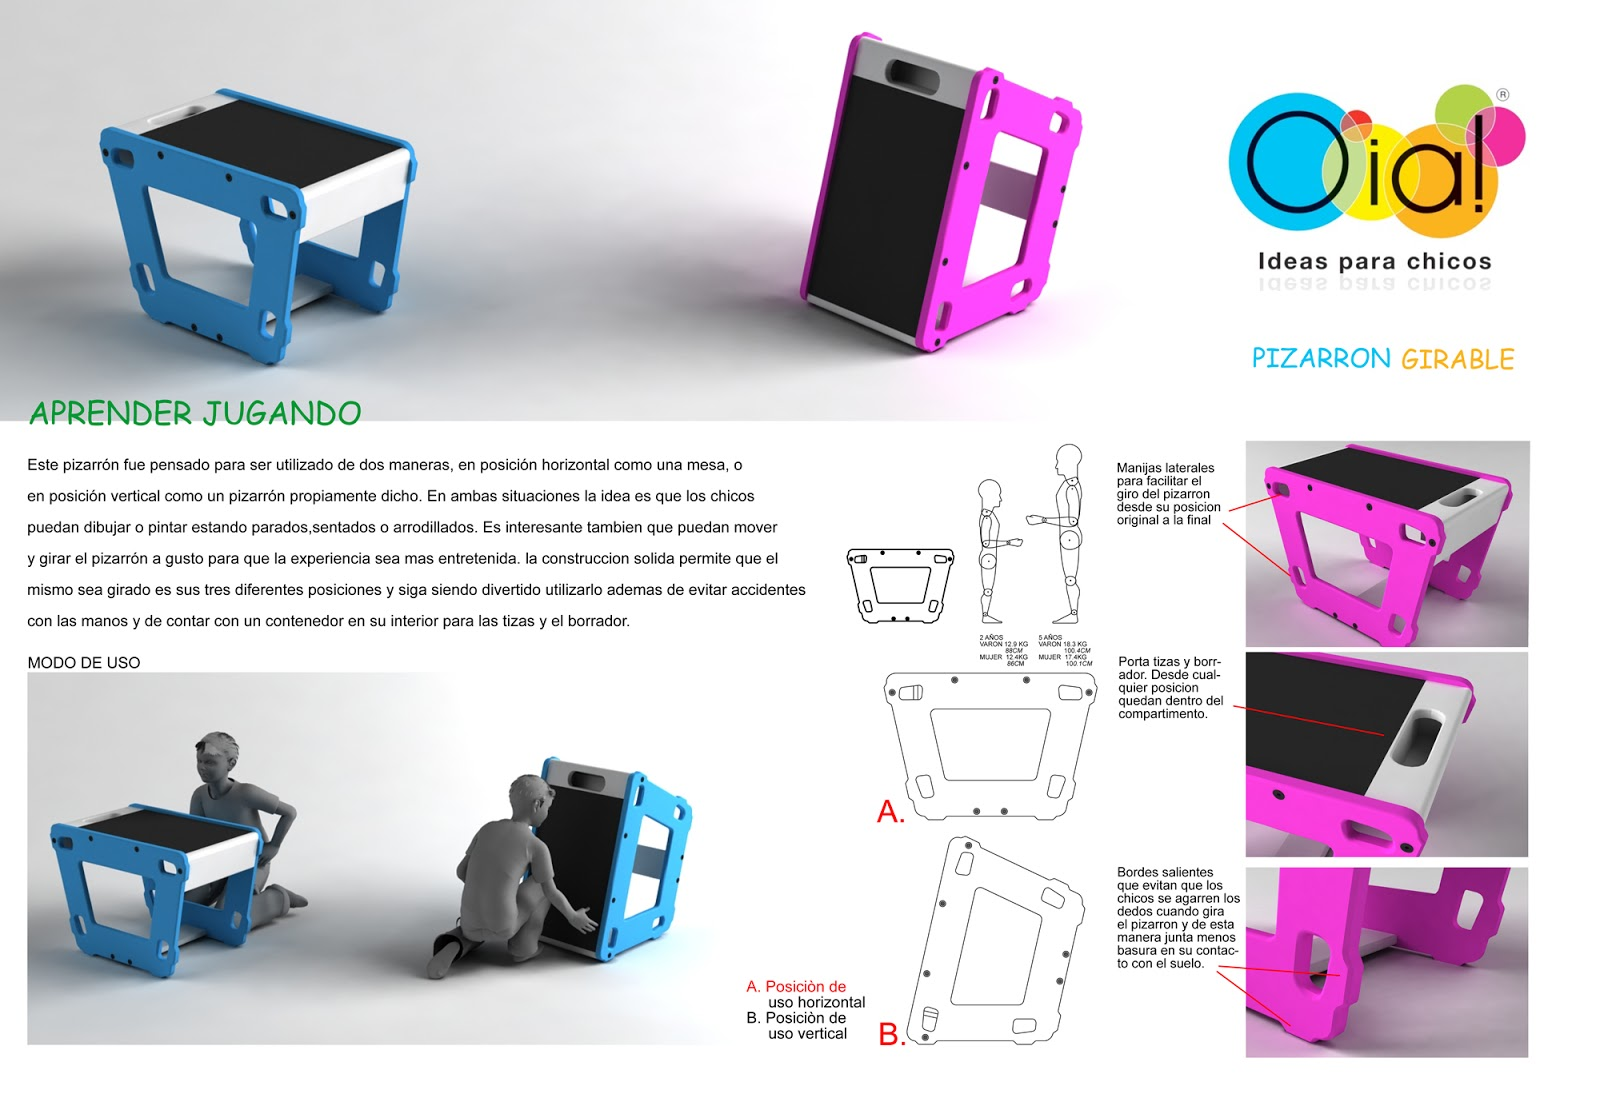 Dise o industrial up industrial design primer premio for Muebles de diseno argentina